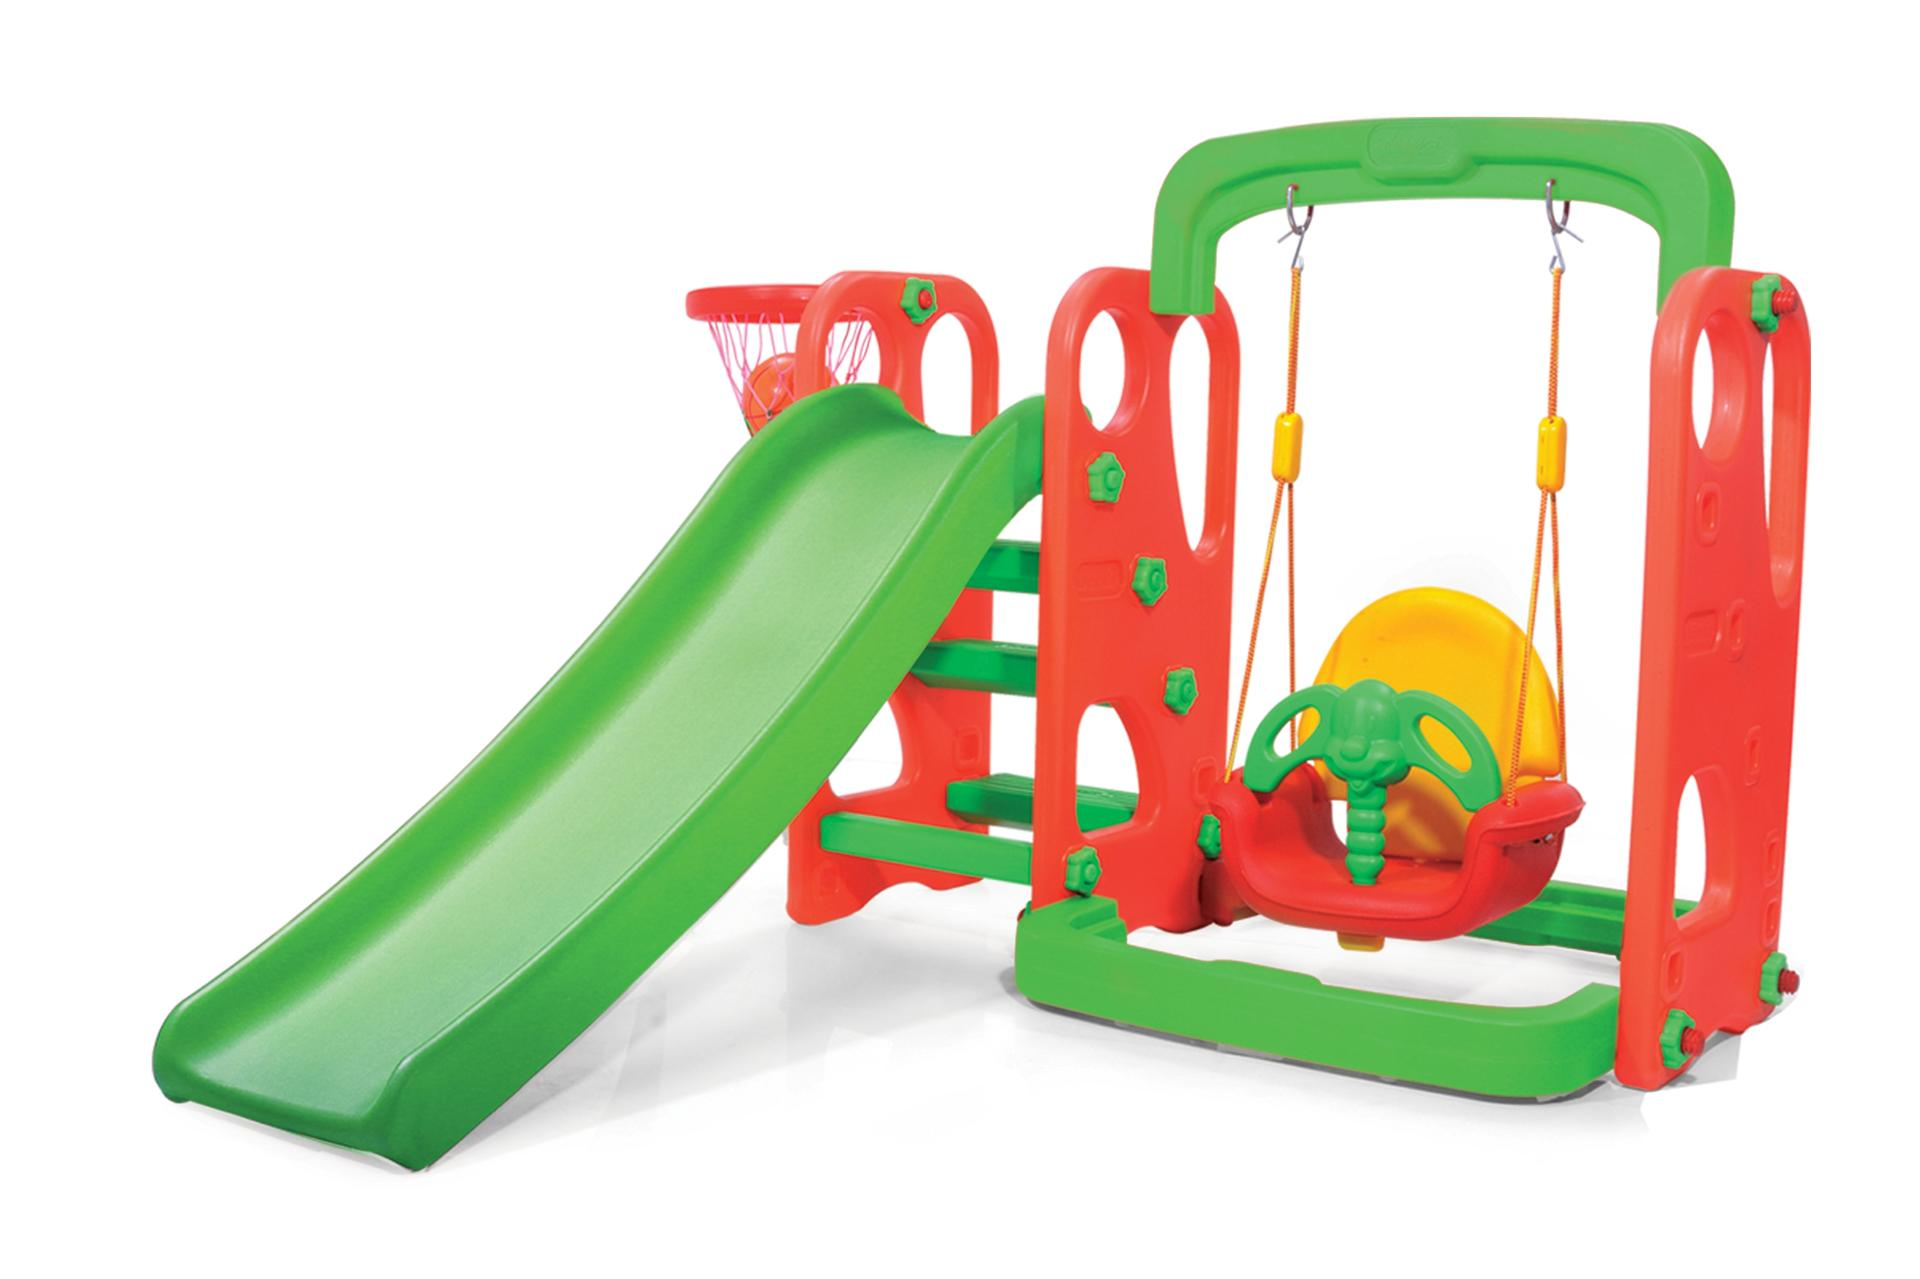 BRAND-NEW-CHILD-INDOOR-OUTDOOR-SLIDE-and-SWING-SET-RRP-299